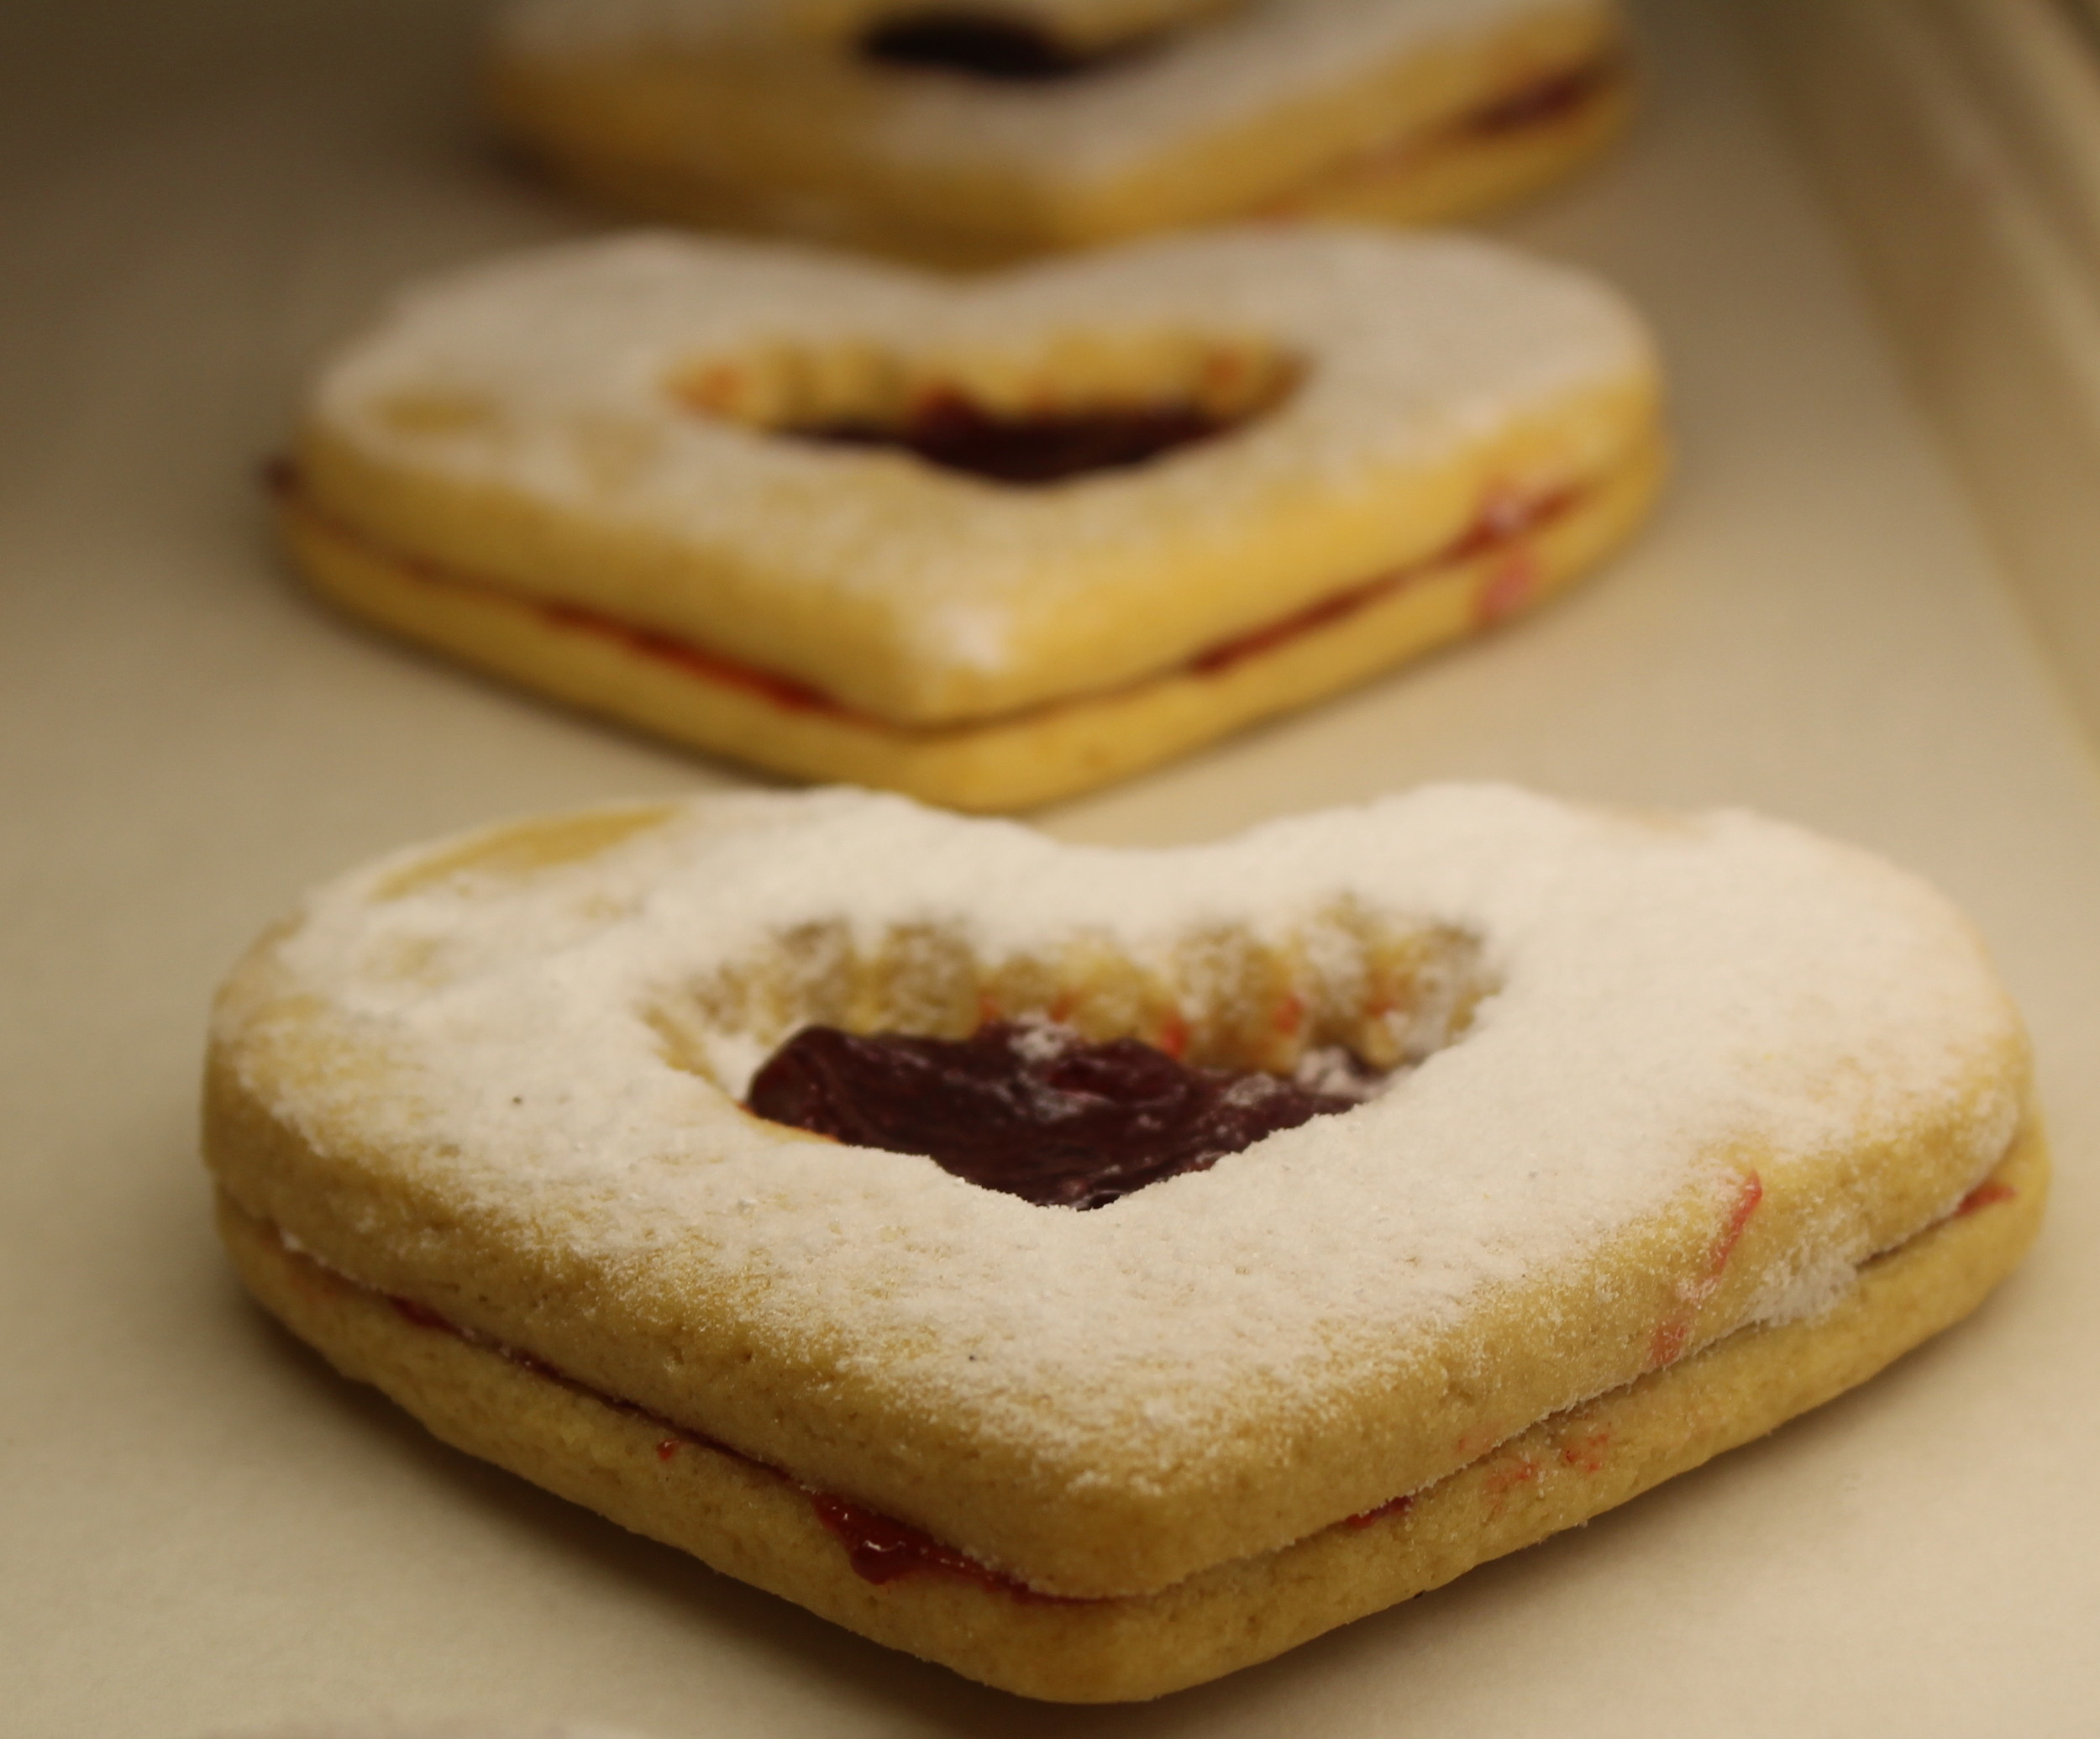 The Entenmann's jelly-filled cookies is one of many treats.